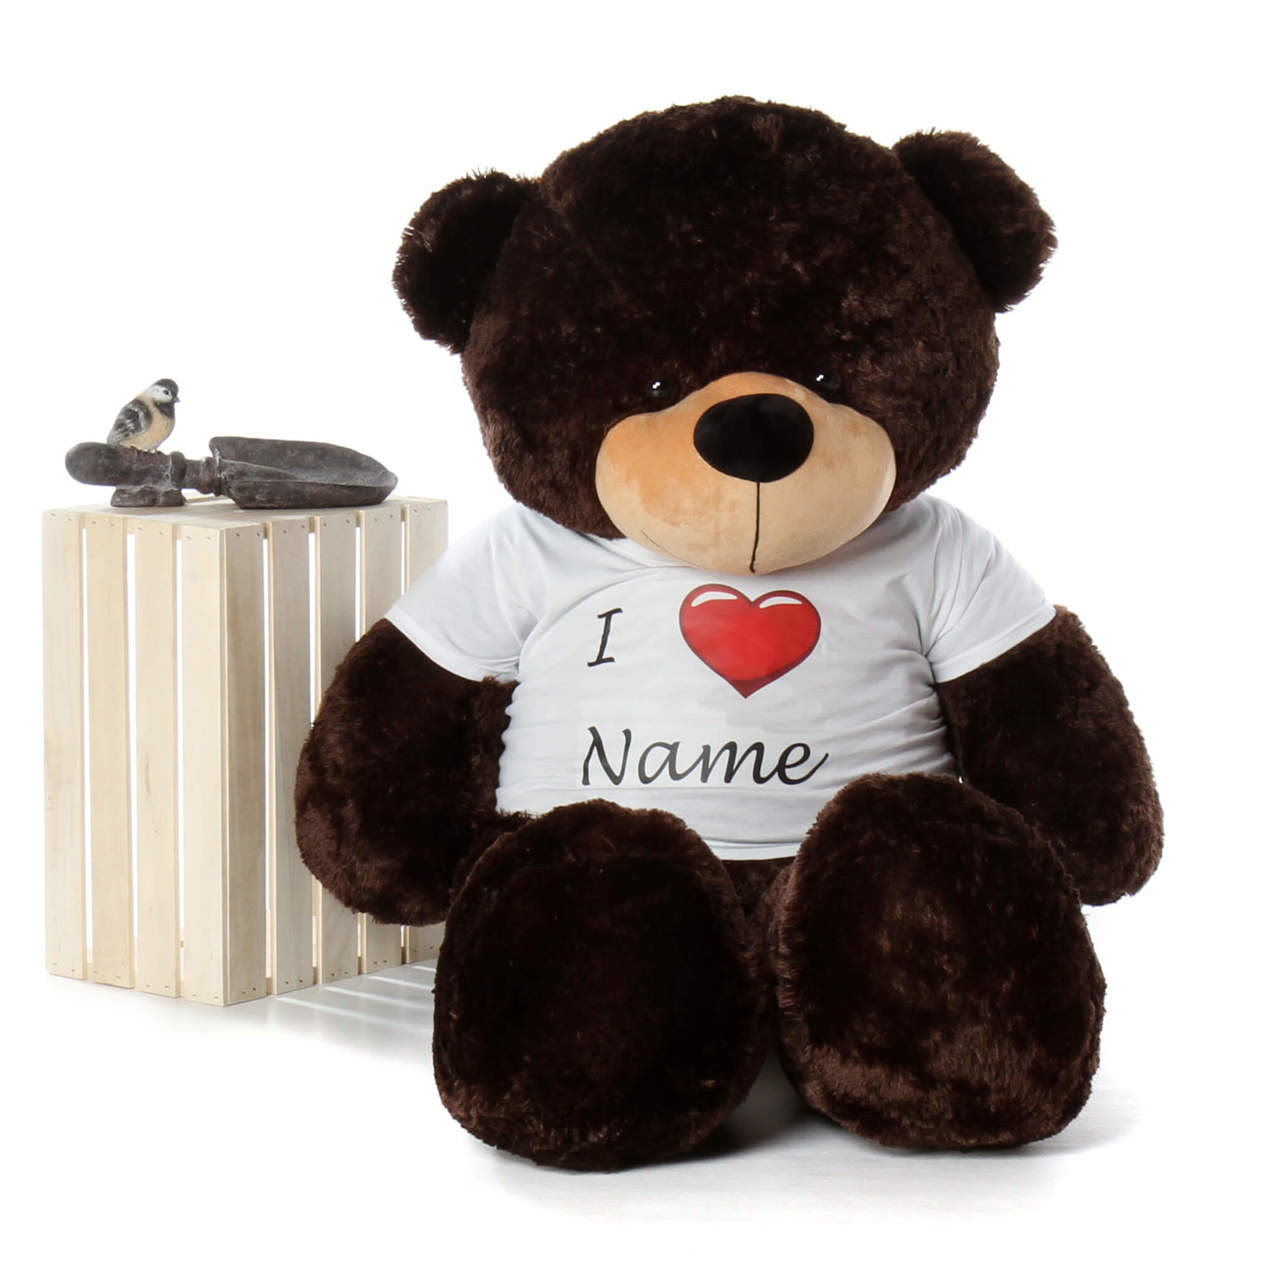 Life Size 5ft Personalized Valentine's Day Teddy Bear